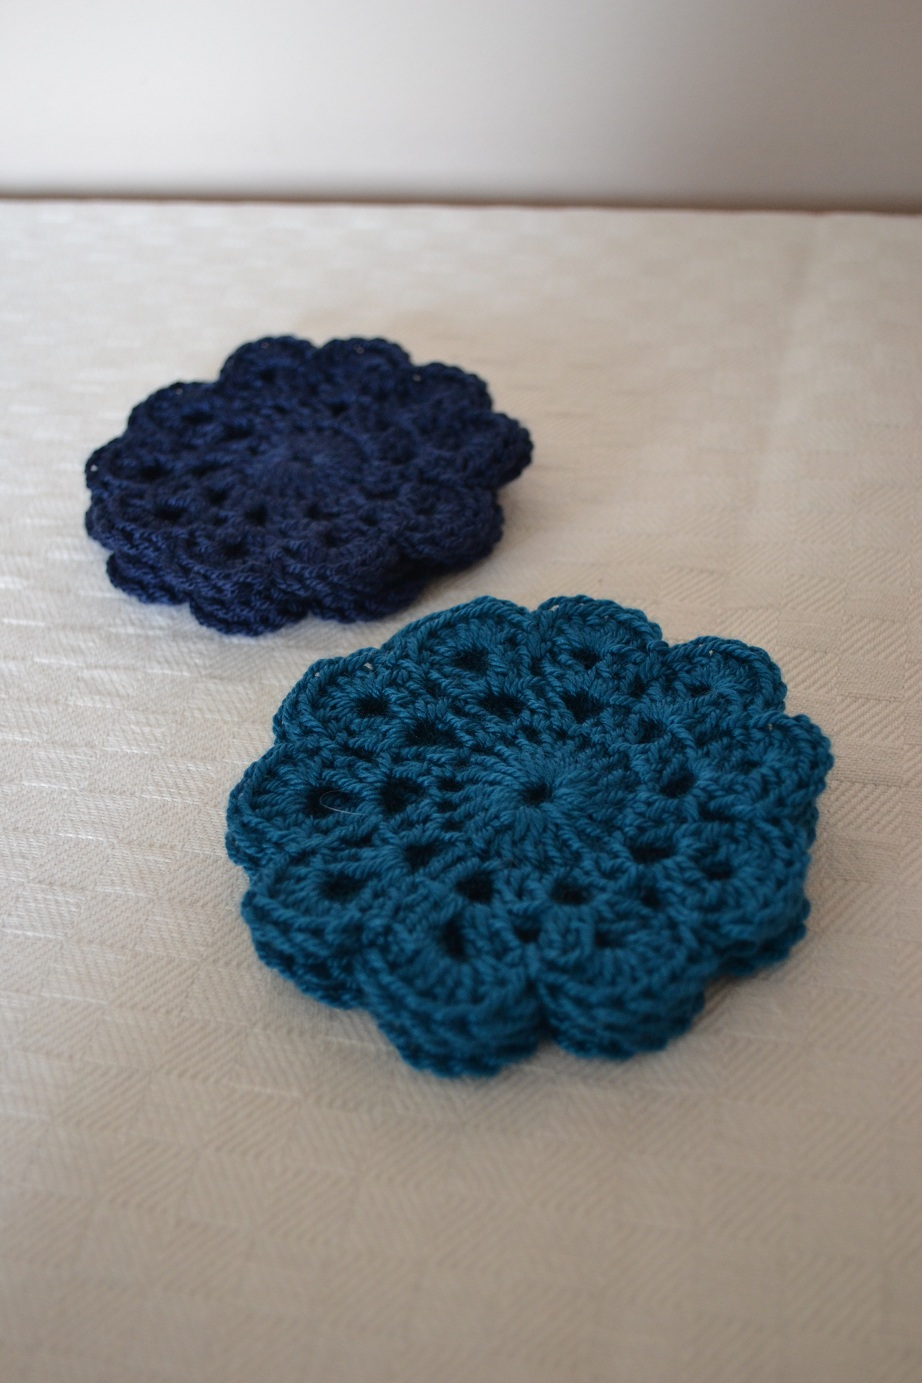 Quick Crocheting : Quick crochet coasters